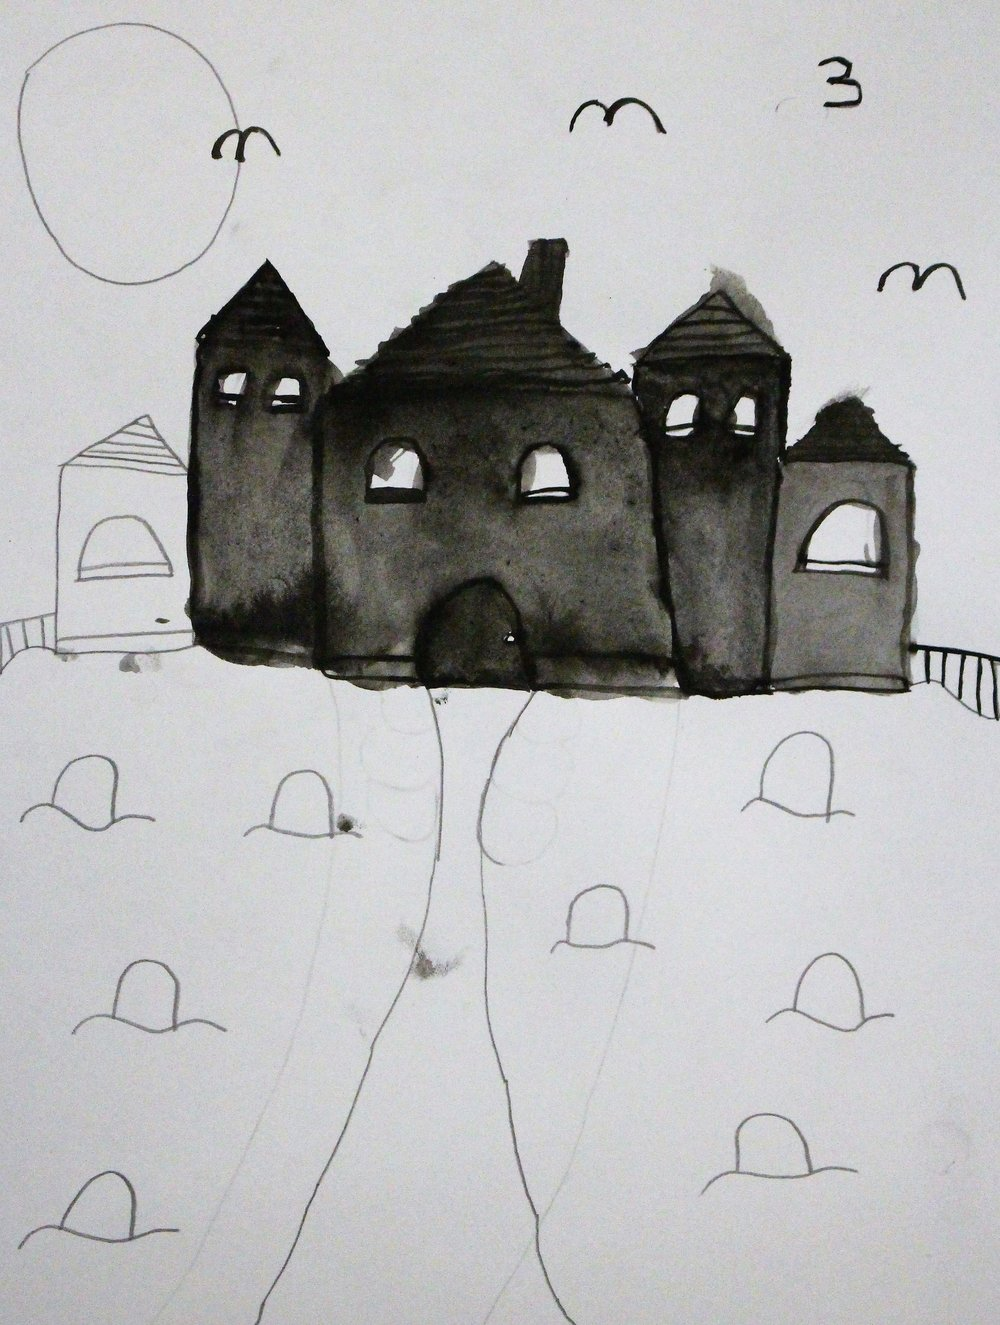 5th Grade: Avalin B. - Artwork: Spooky Victorian Home Silhouette(Work in Progress)